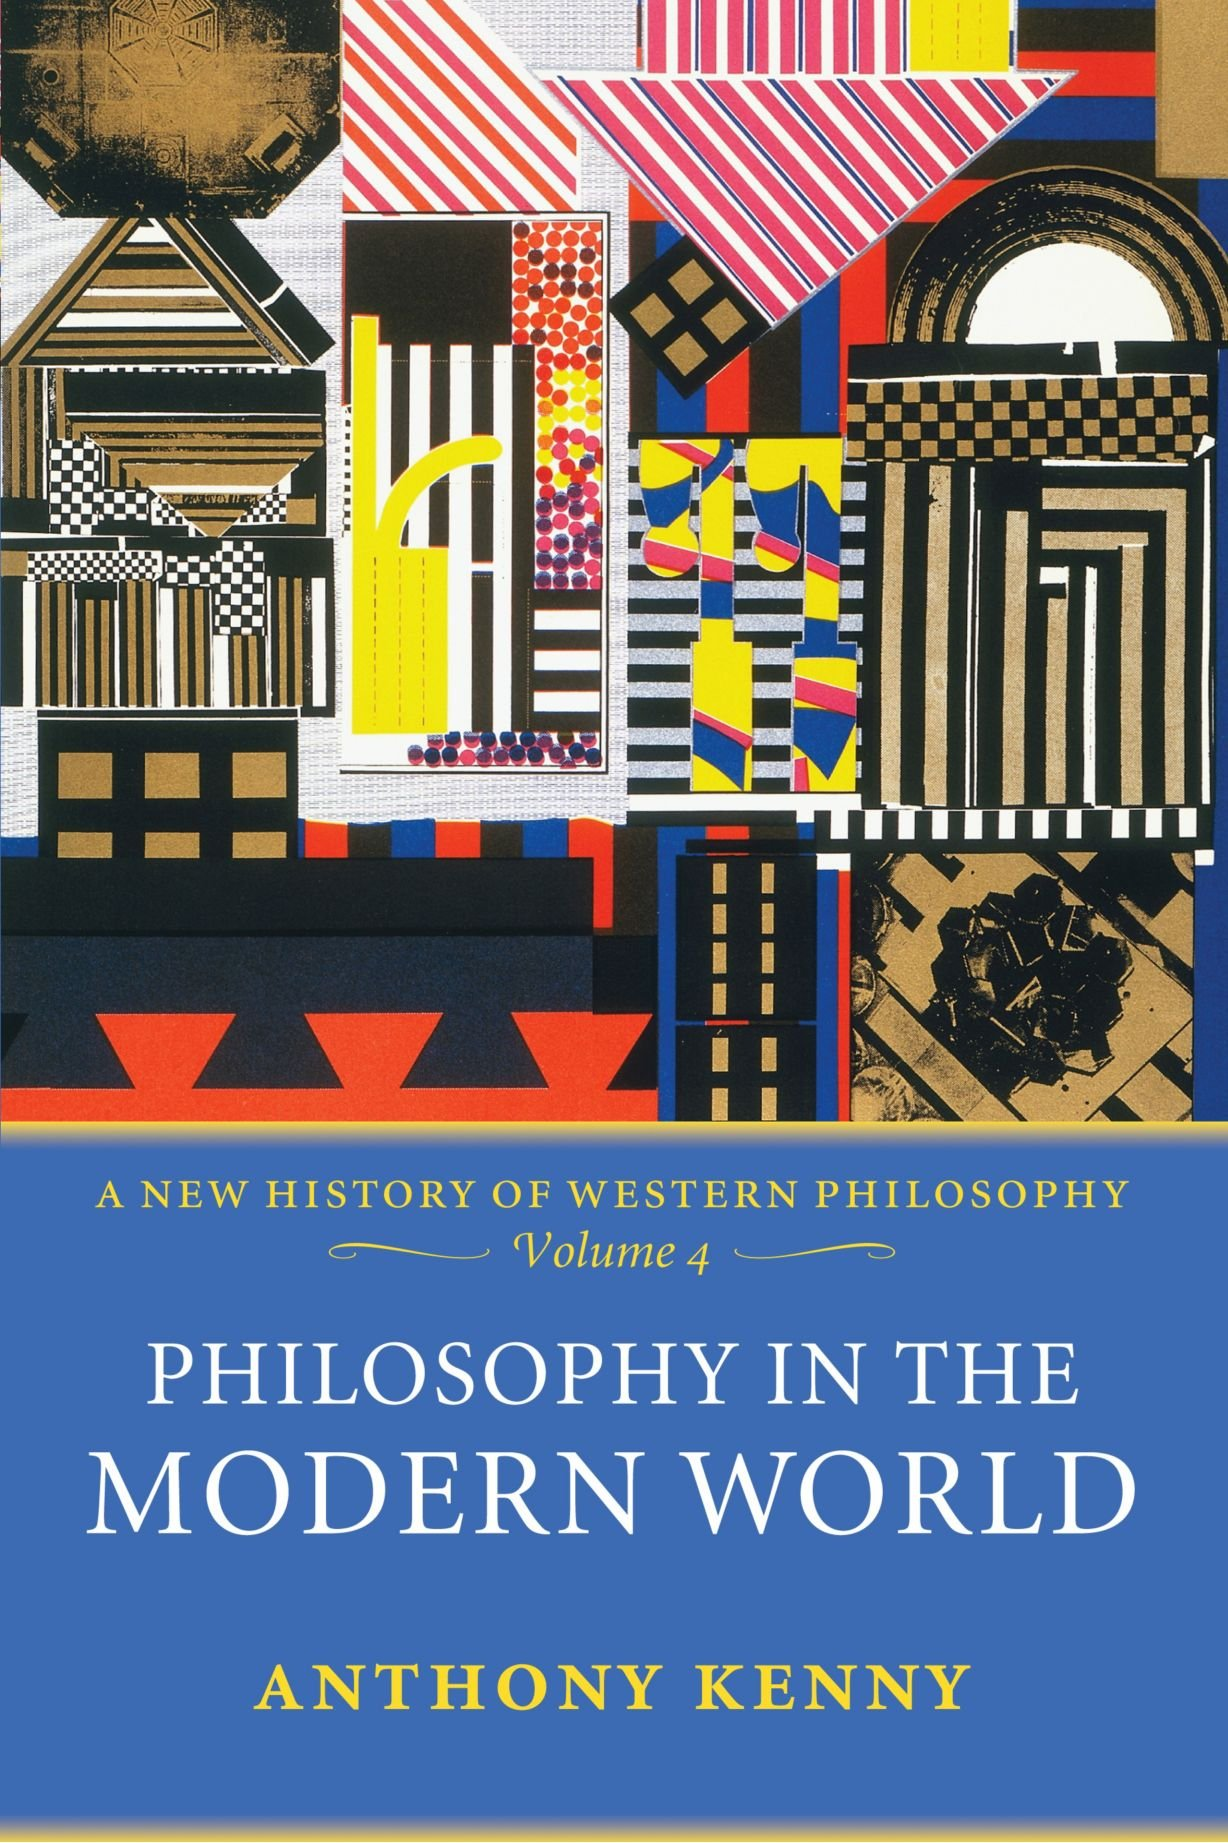 Amazon 1 ancient philosophy a new history of western philosophy in the modern world a new history of western philosophy volume 4 fandeluxe Ebook collections